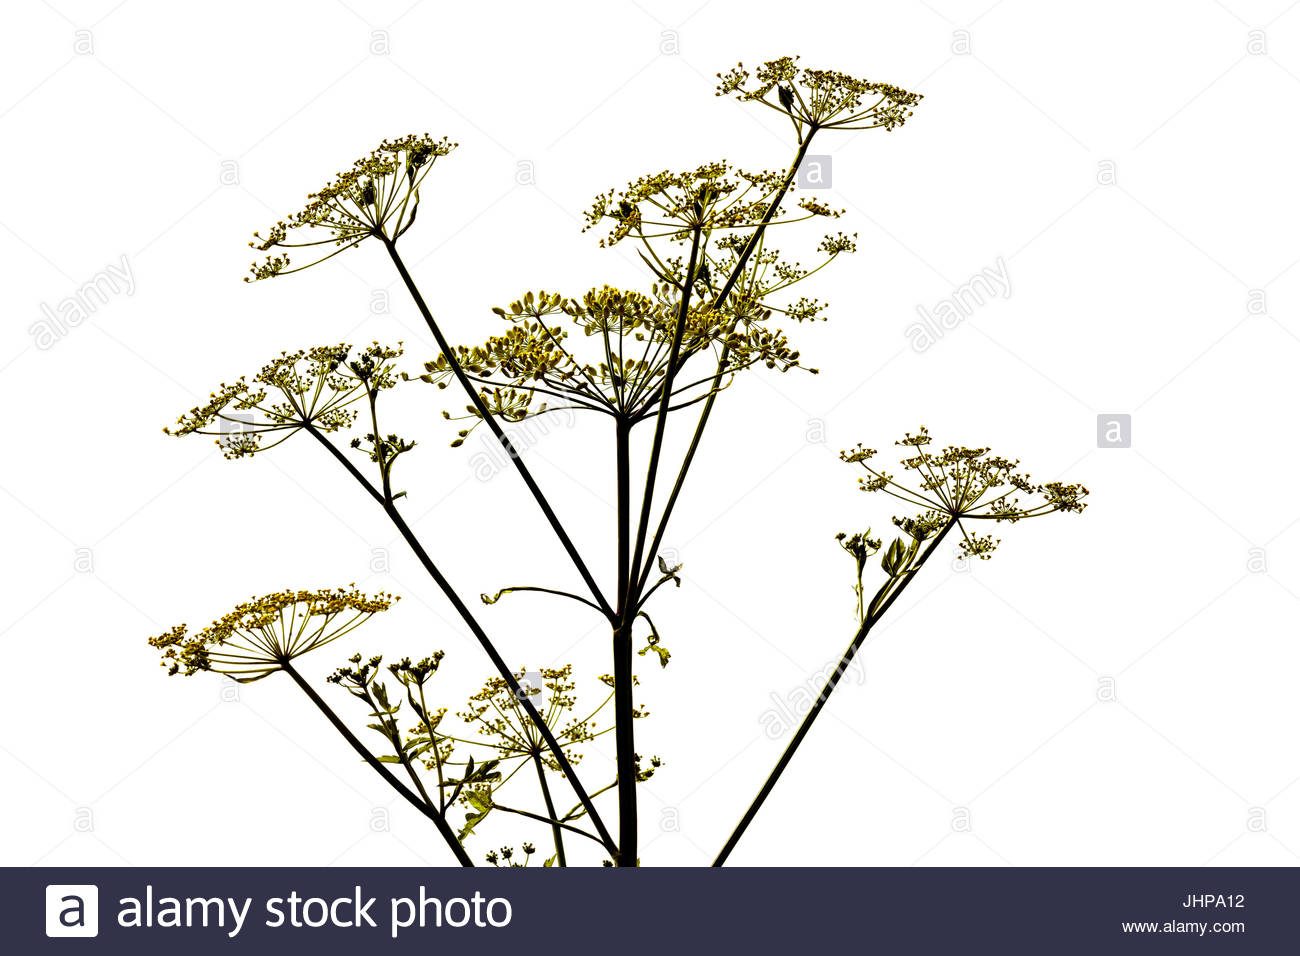 Heracleum maximum, cow parsnip Indian celery, Indian rhubarb pushki furocoumarins, cut out; cut outs; cut-out - Stock Image